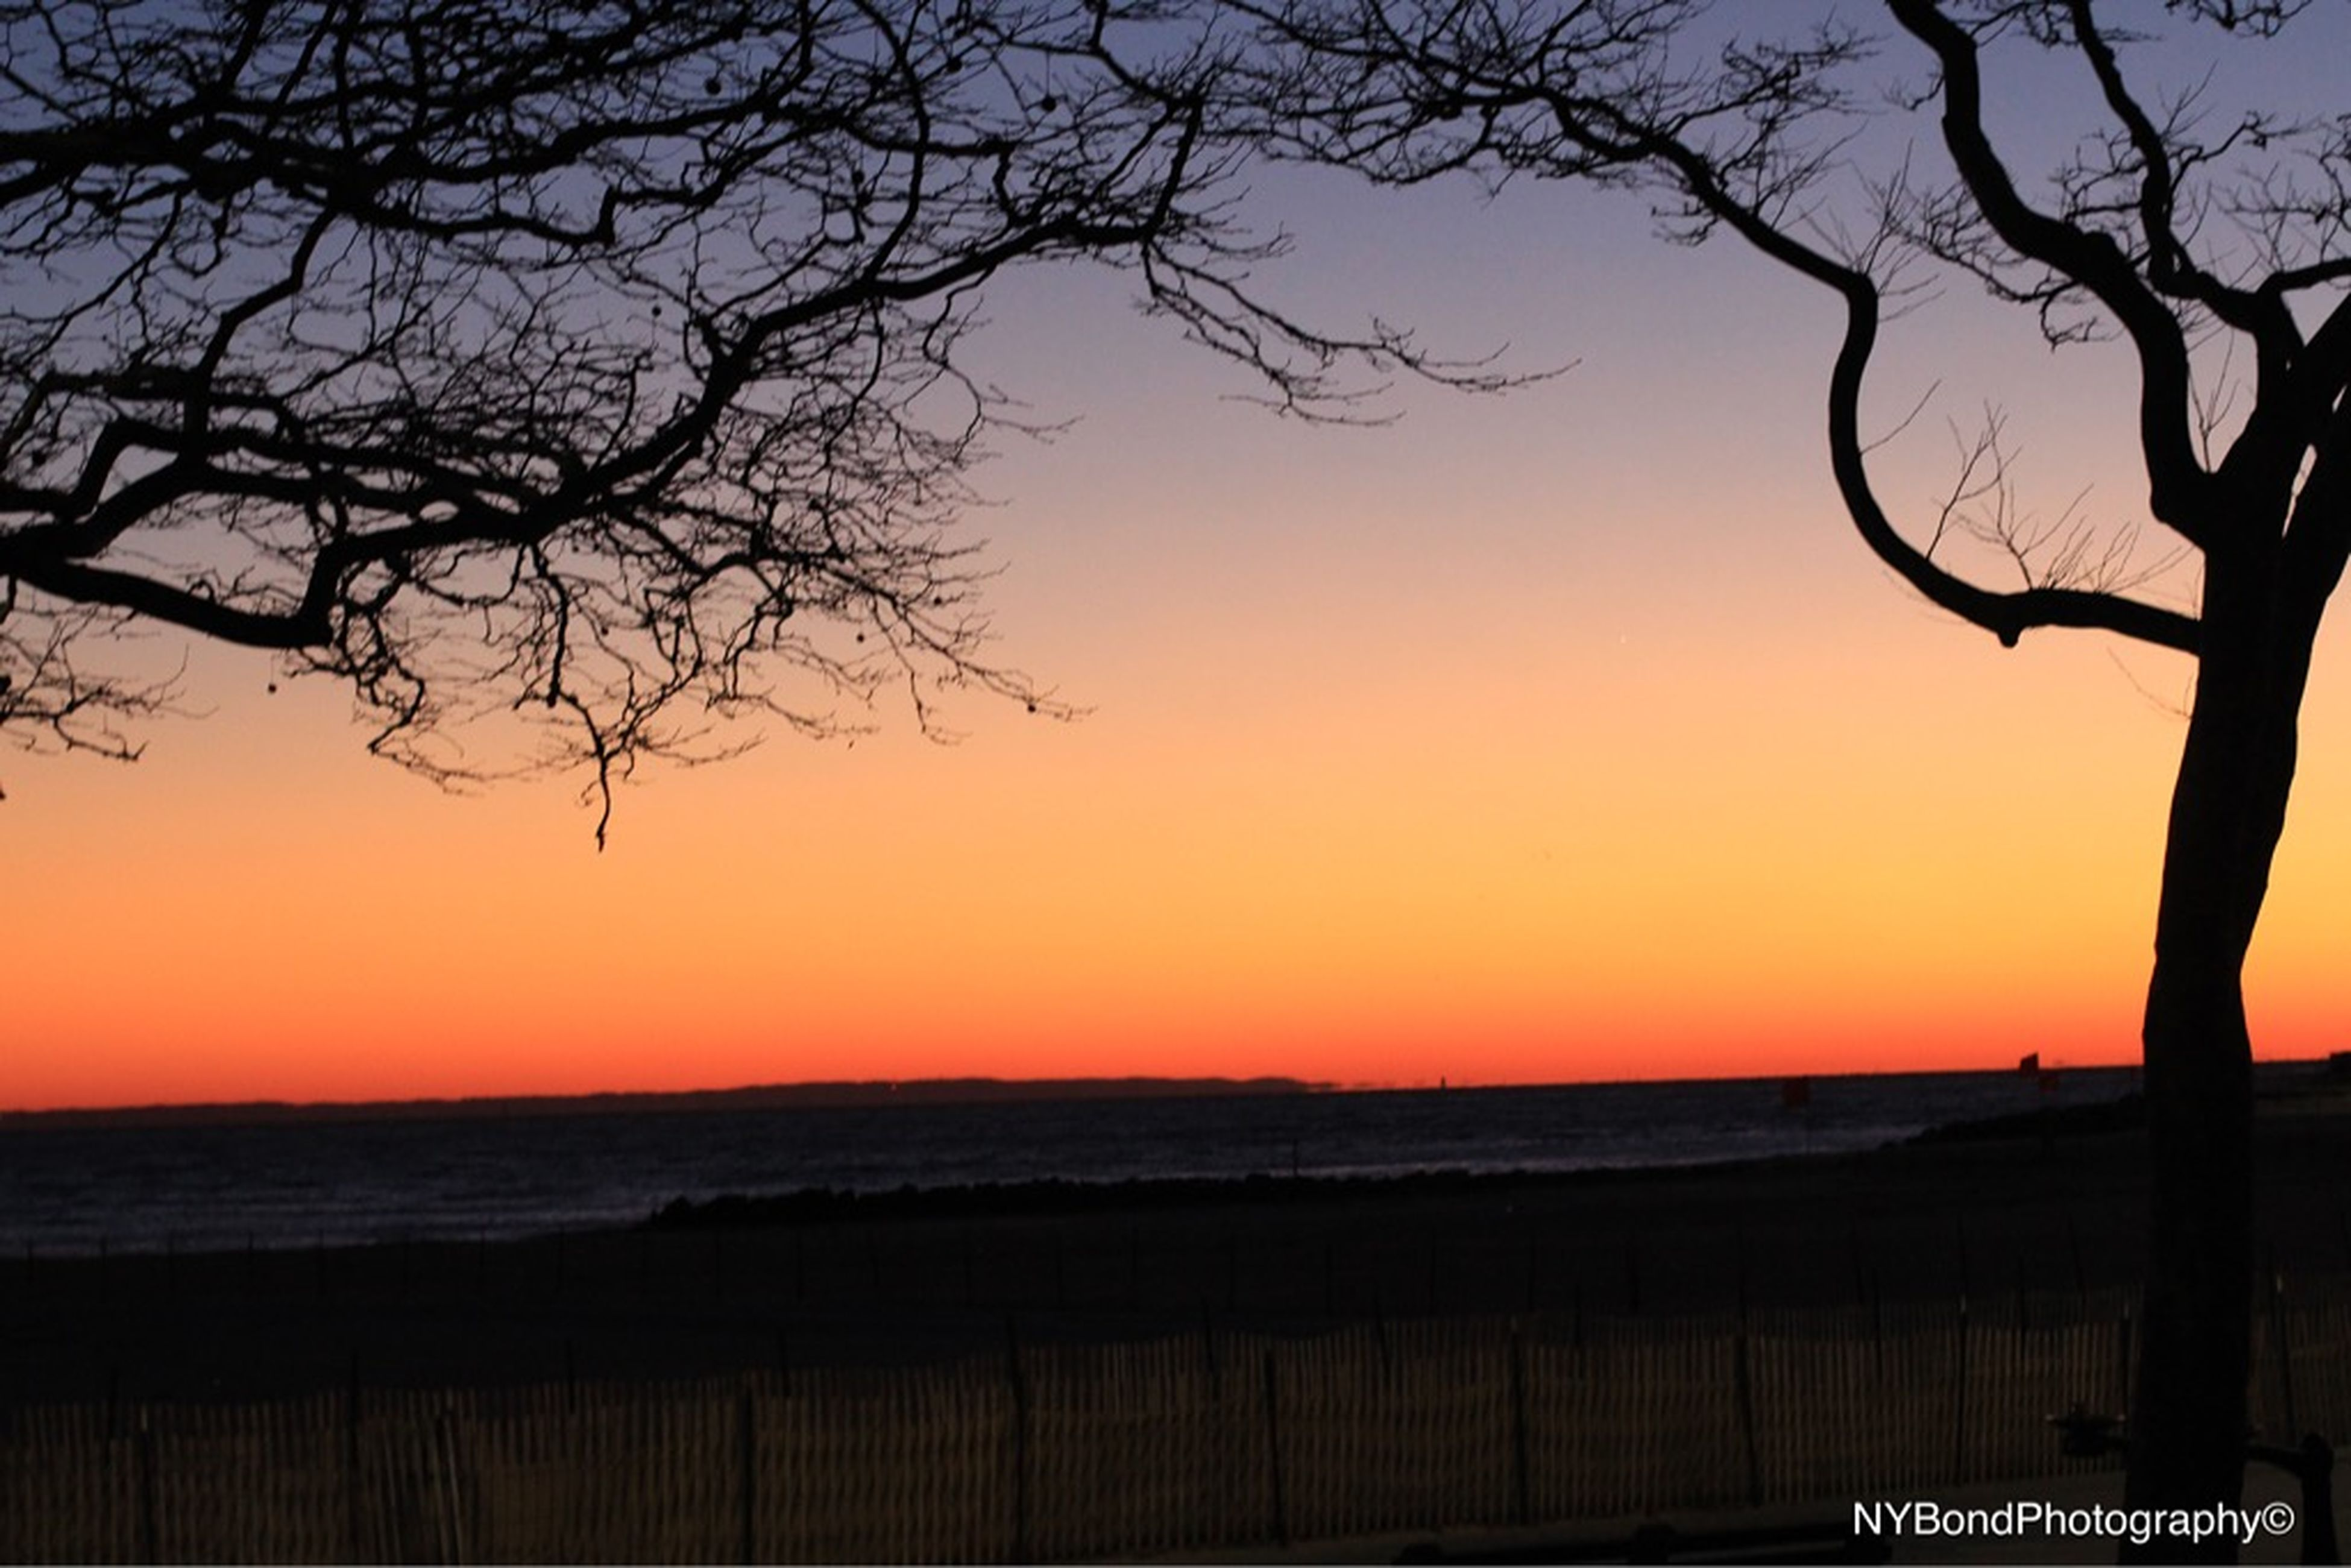 sunset, branch, bare tree, silhouette, tree, scenics, tranquility, tranquil scene, orange color, water, beauty in nature, nature, sea, clear sky, sky, idyllic, horizon over water, outdoors, dusk, no people